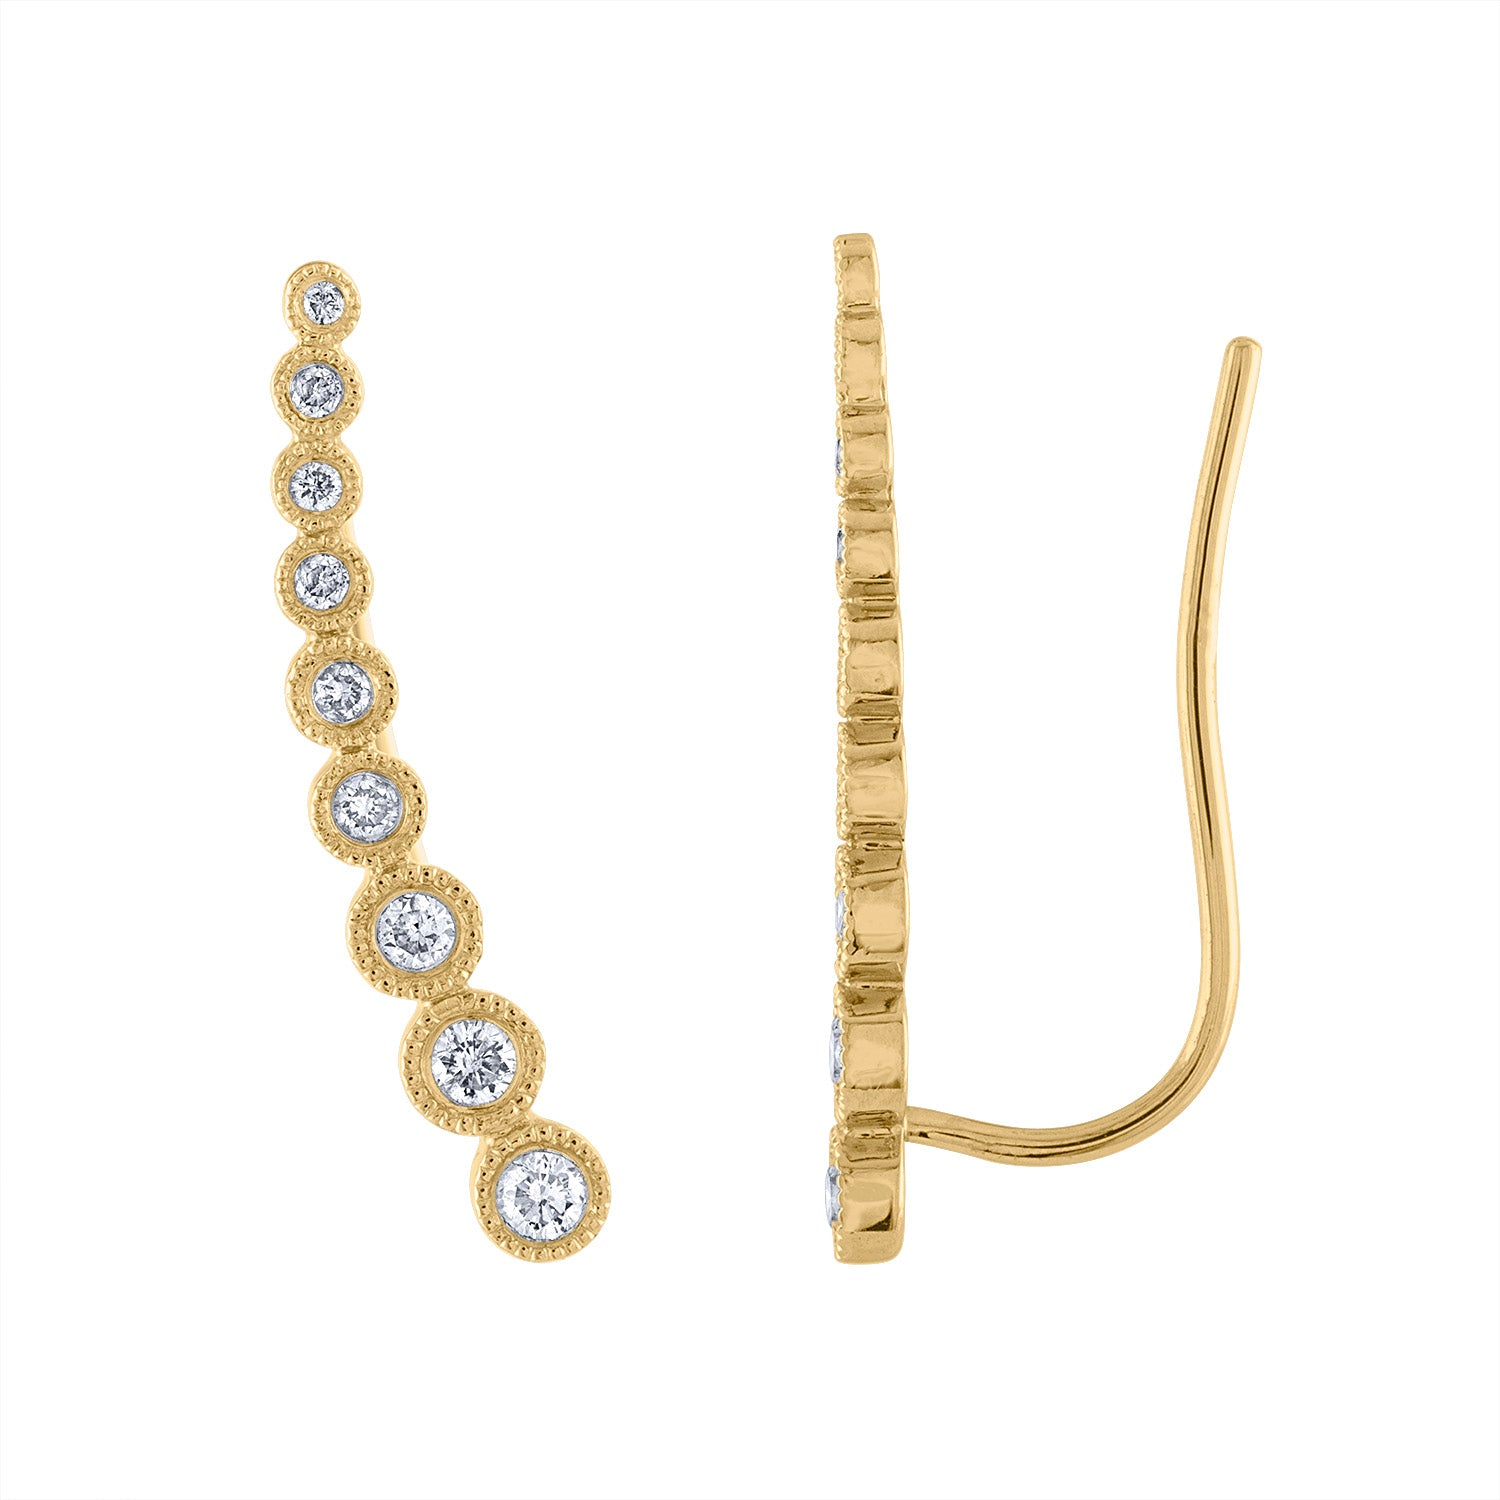 14KT GOLD ASCENDING DIAMOND BEZEL CLIMBER EARRING